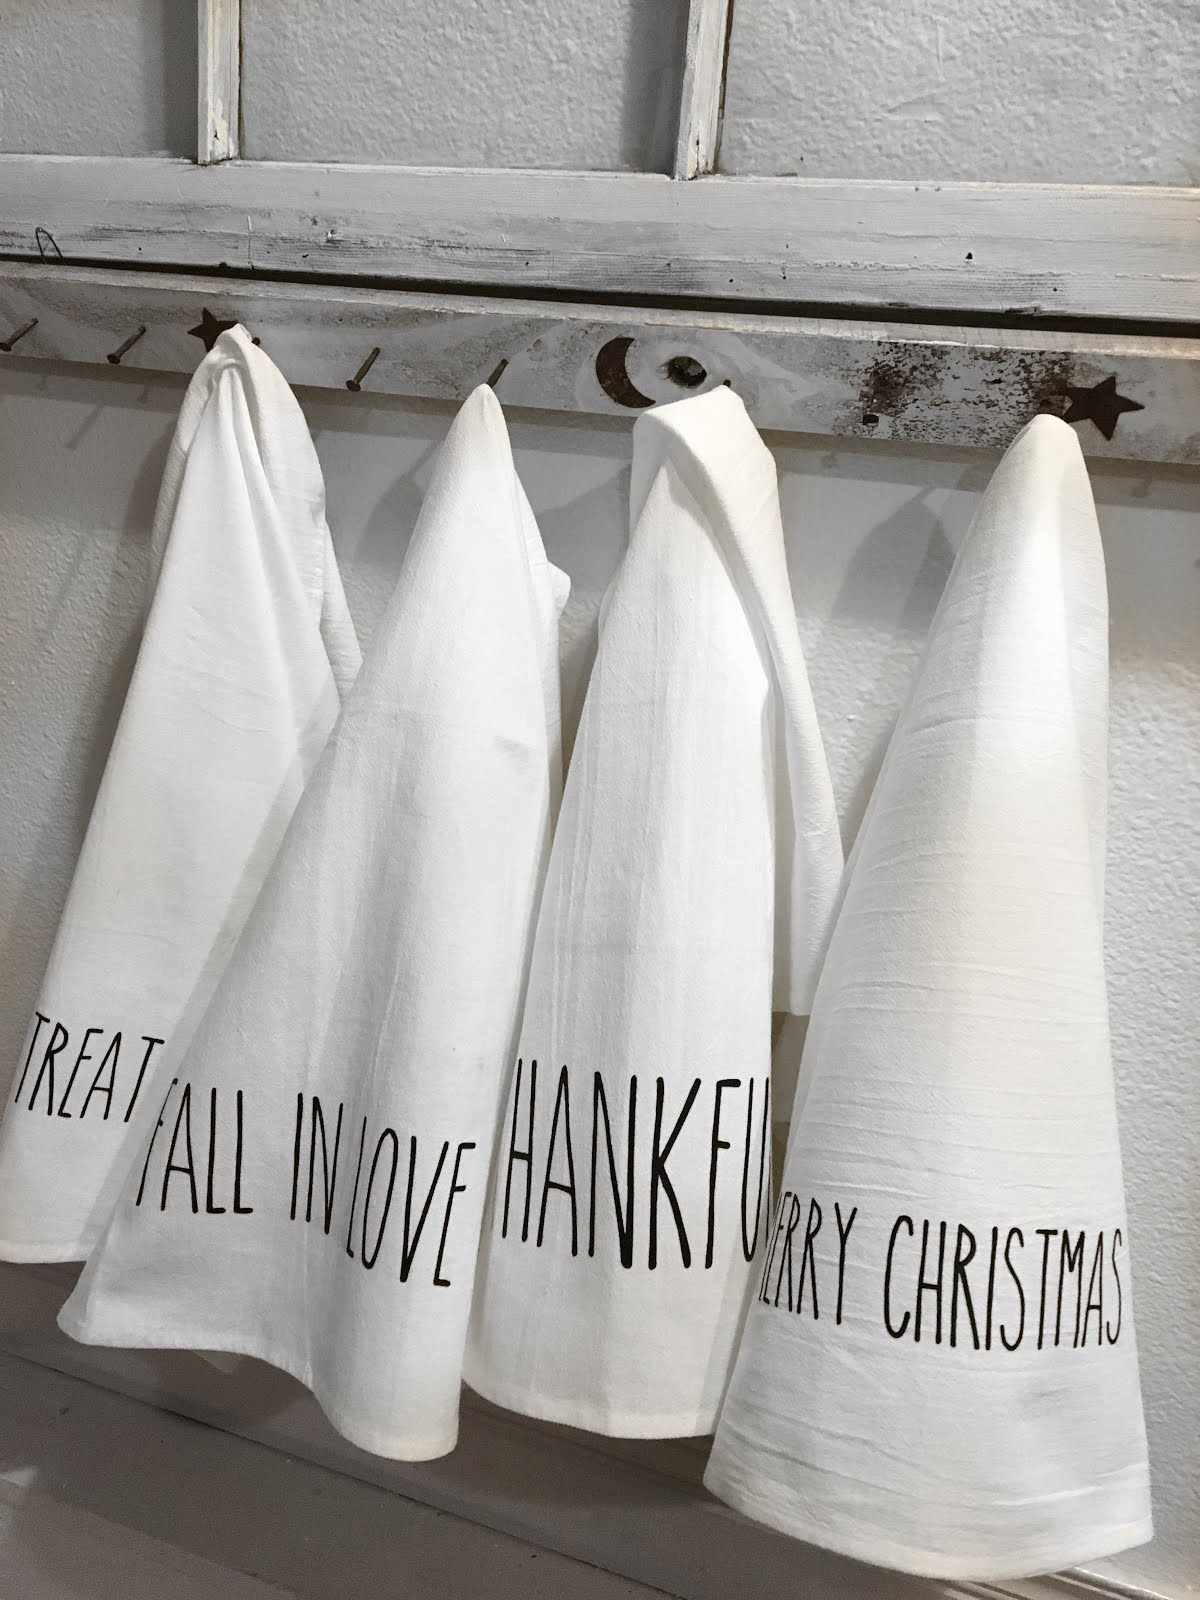 New Holiday towels in shop!